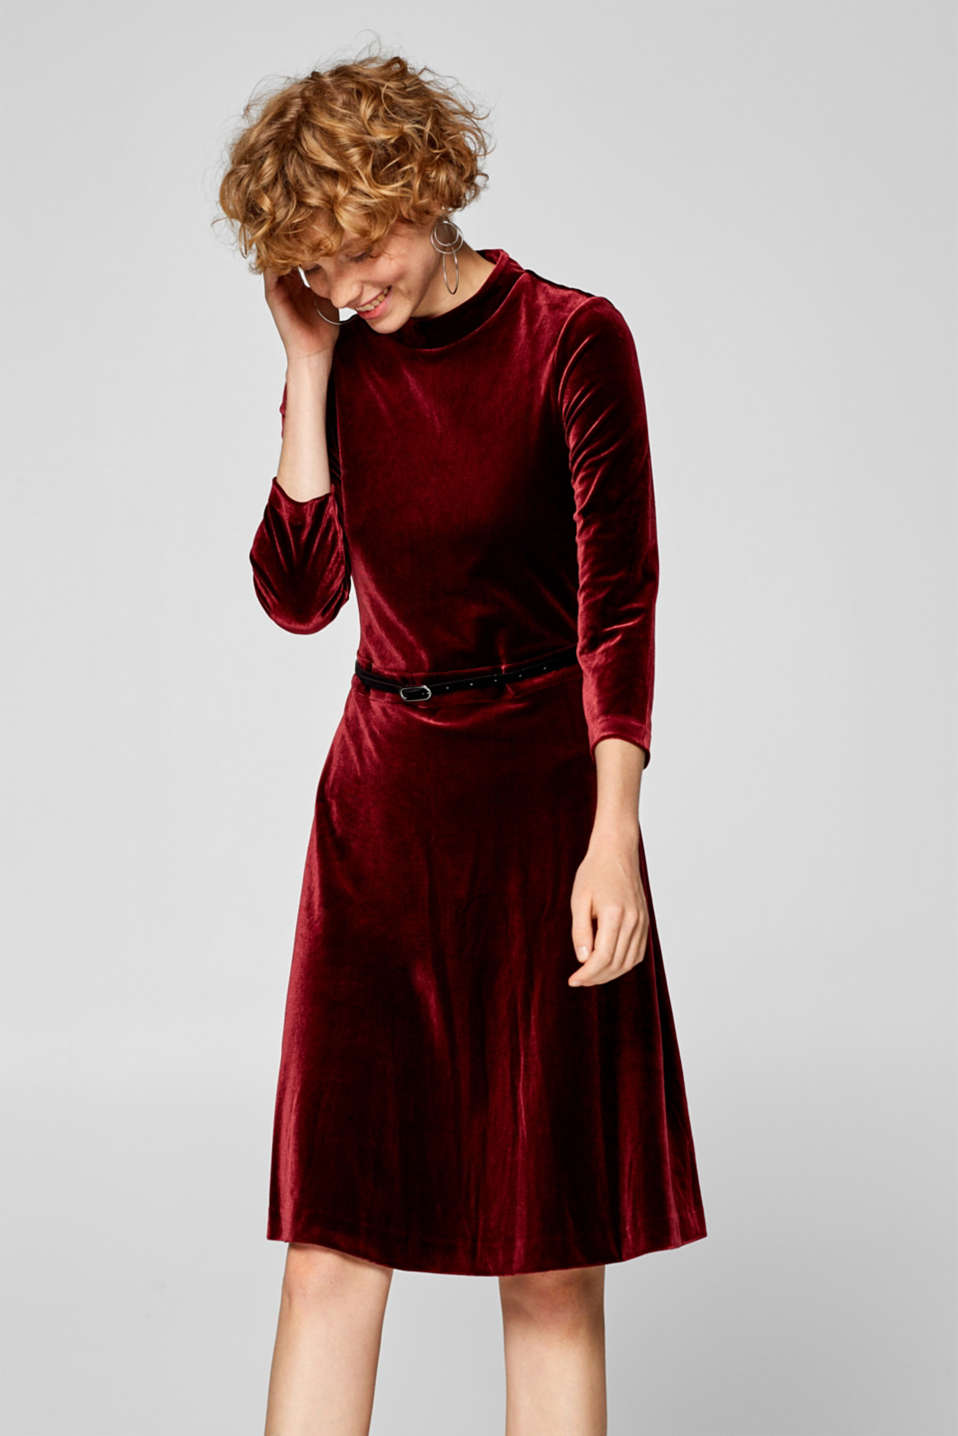 Esprit - Velvet dress with band colour and belt